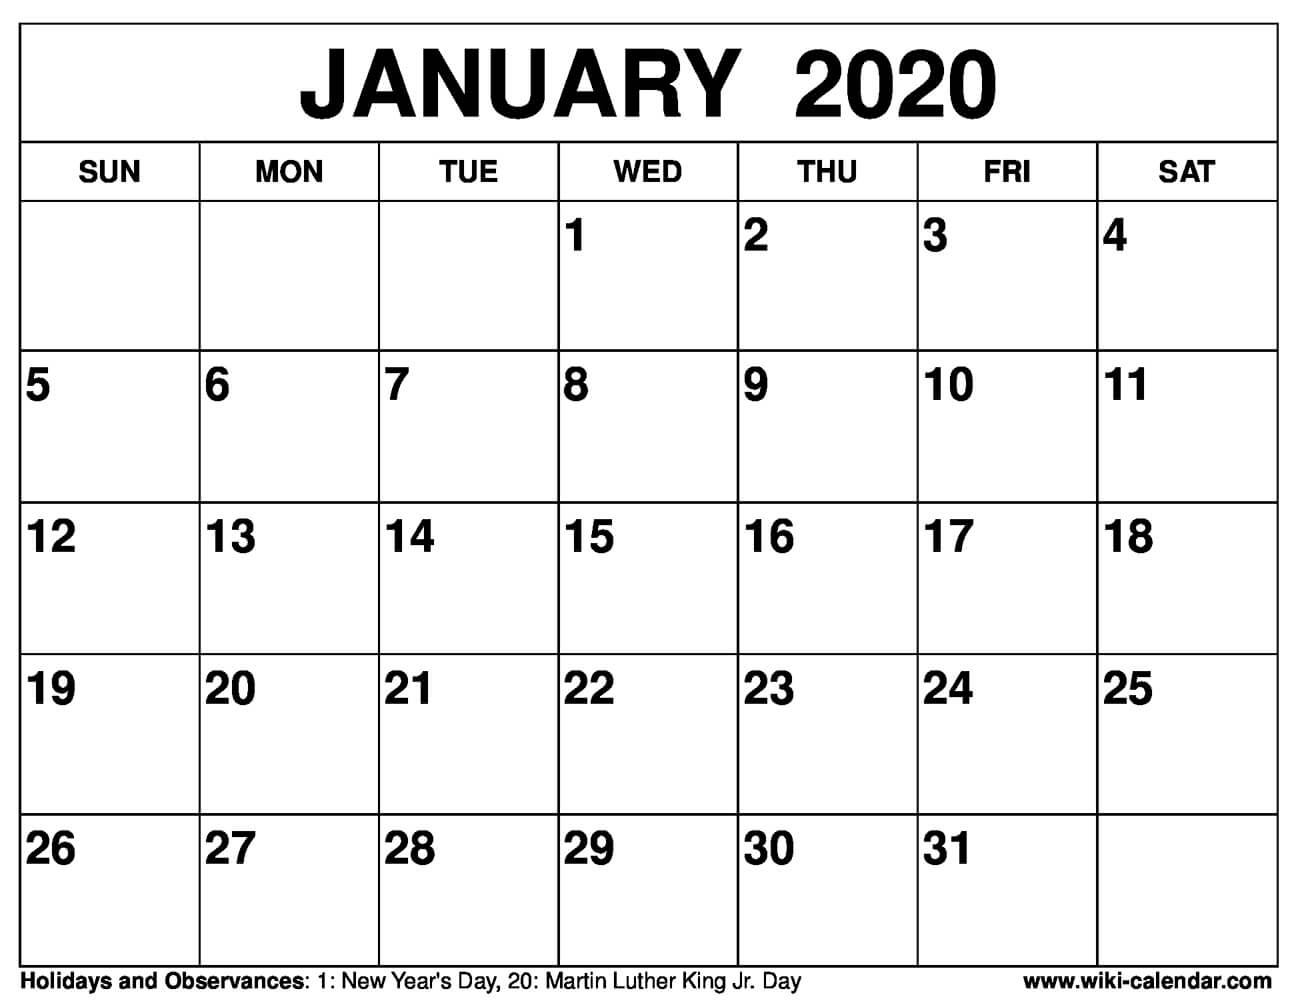 Downloadable January 2020 Calendar  Forza.mbiconsultingltd in Blank January Calendar 2020